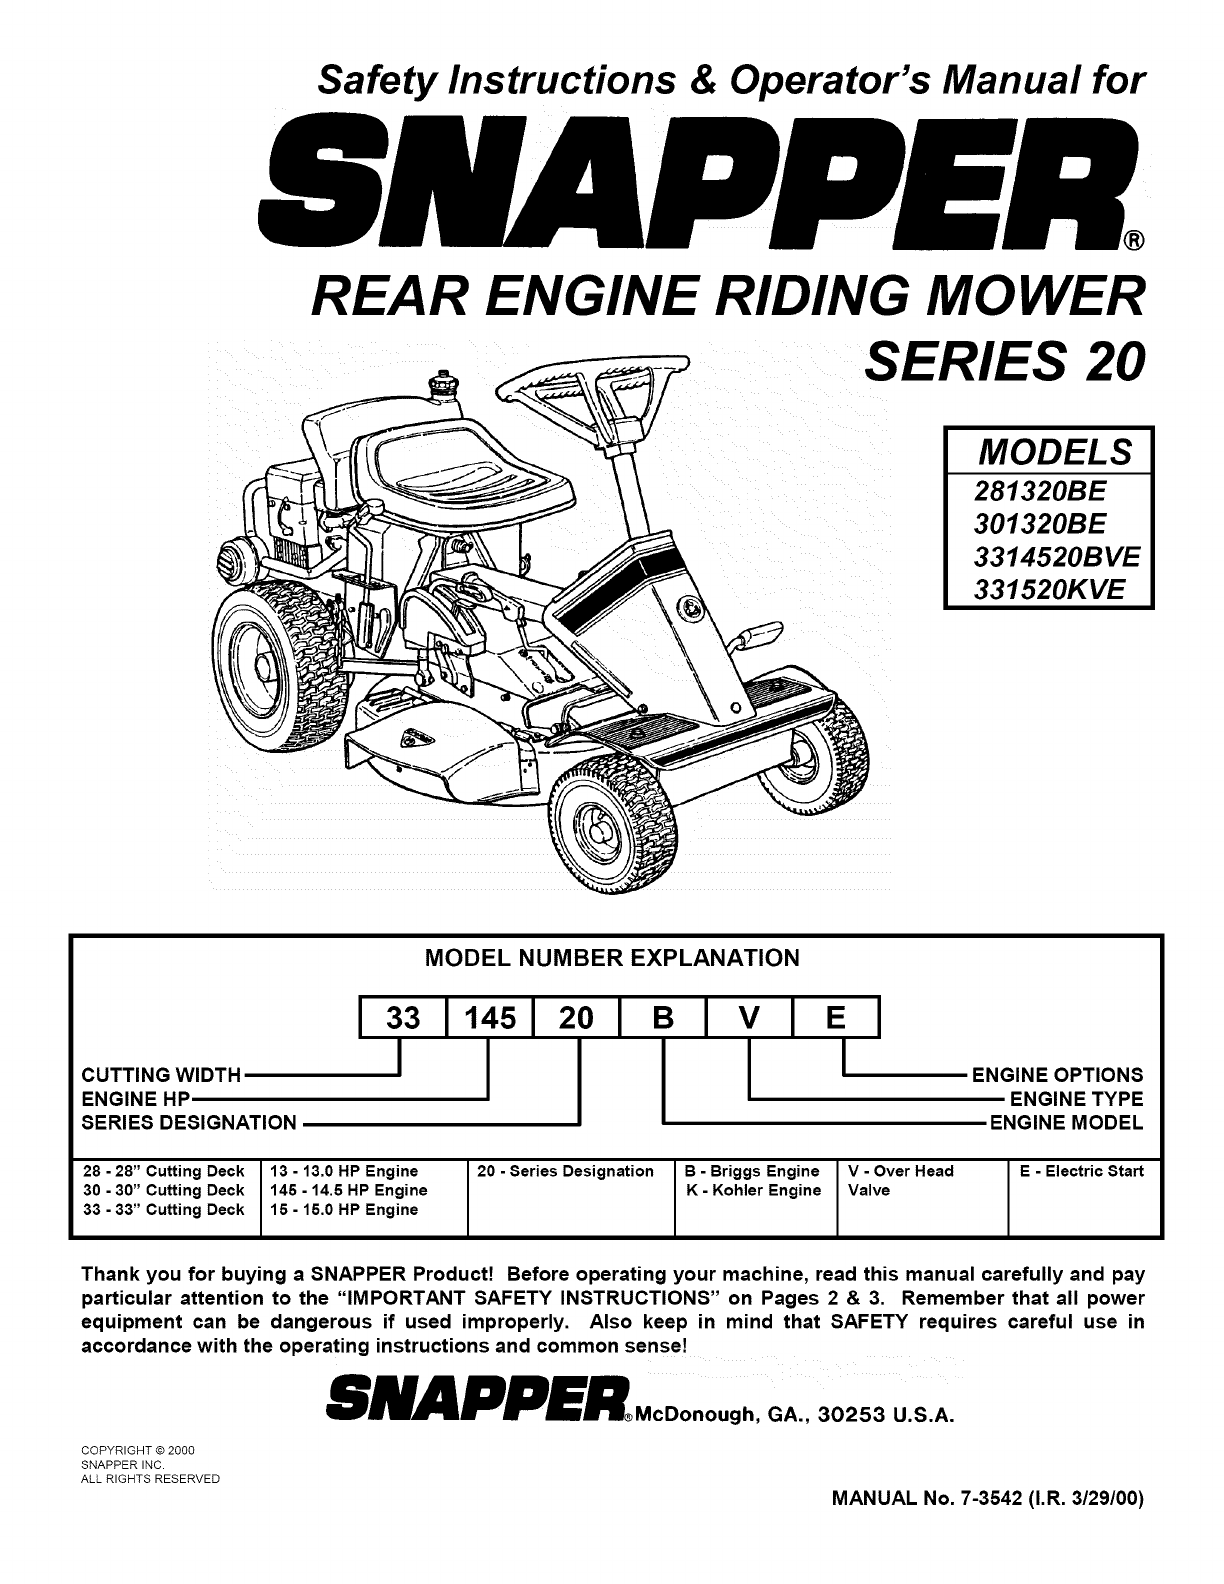 Mower Wiring Diagram In Addition Snapper Riding Mower Wiring Diagram